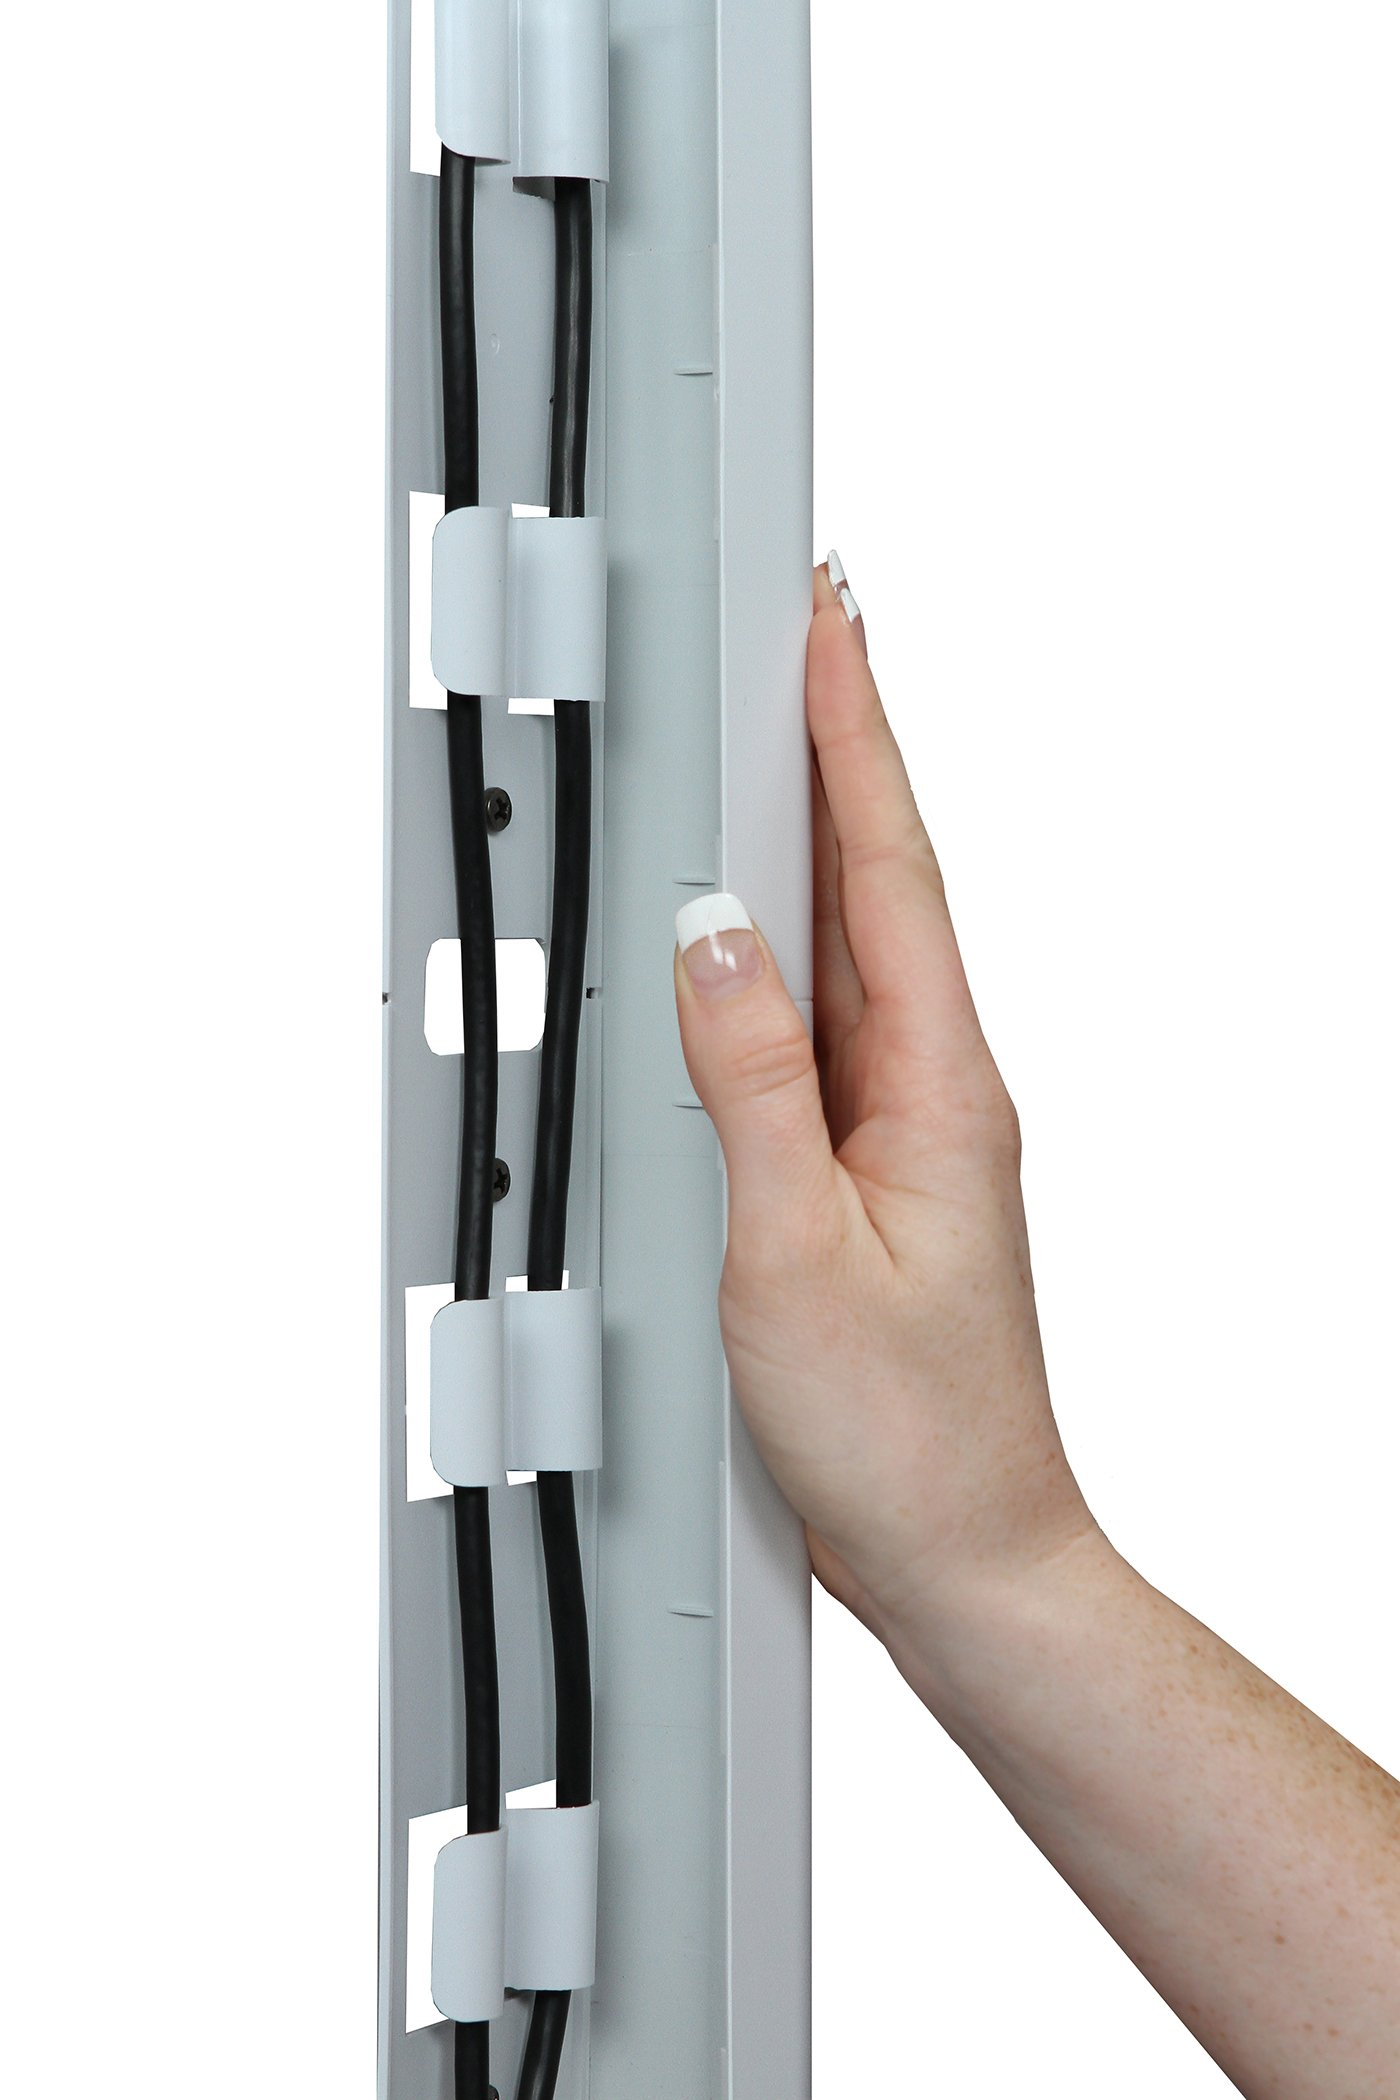 OmniMount OCM On-Wall Cable Management Covers, Paintable, Flat Design to Conceal up to 6 Cables, Set of Three, 3.25'' x 18'' Inches by OmniMount (Image #6)